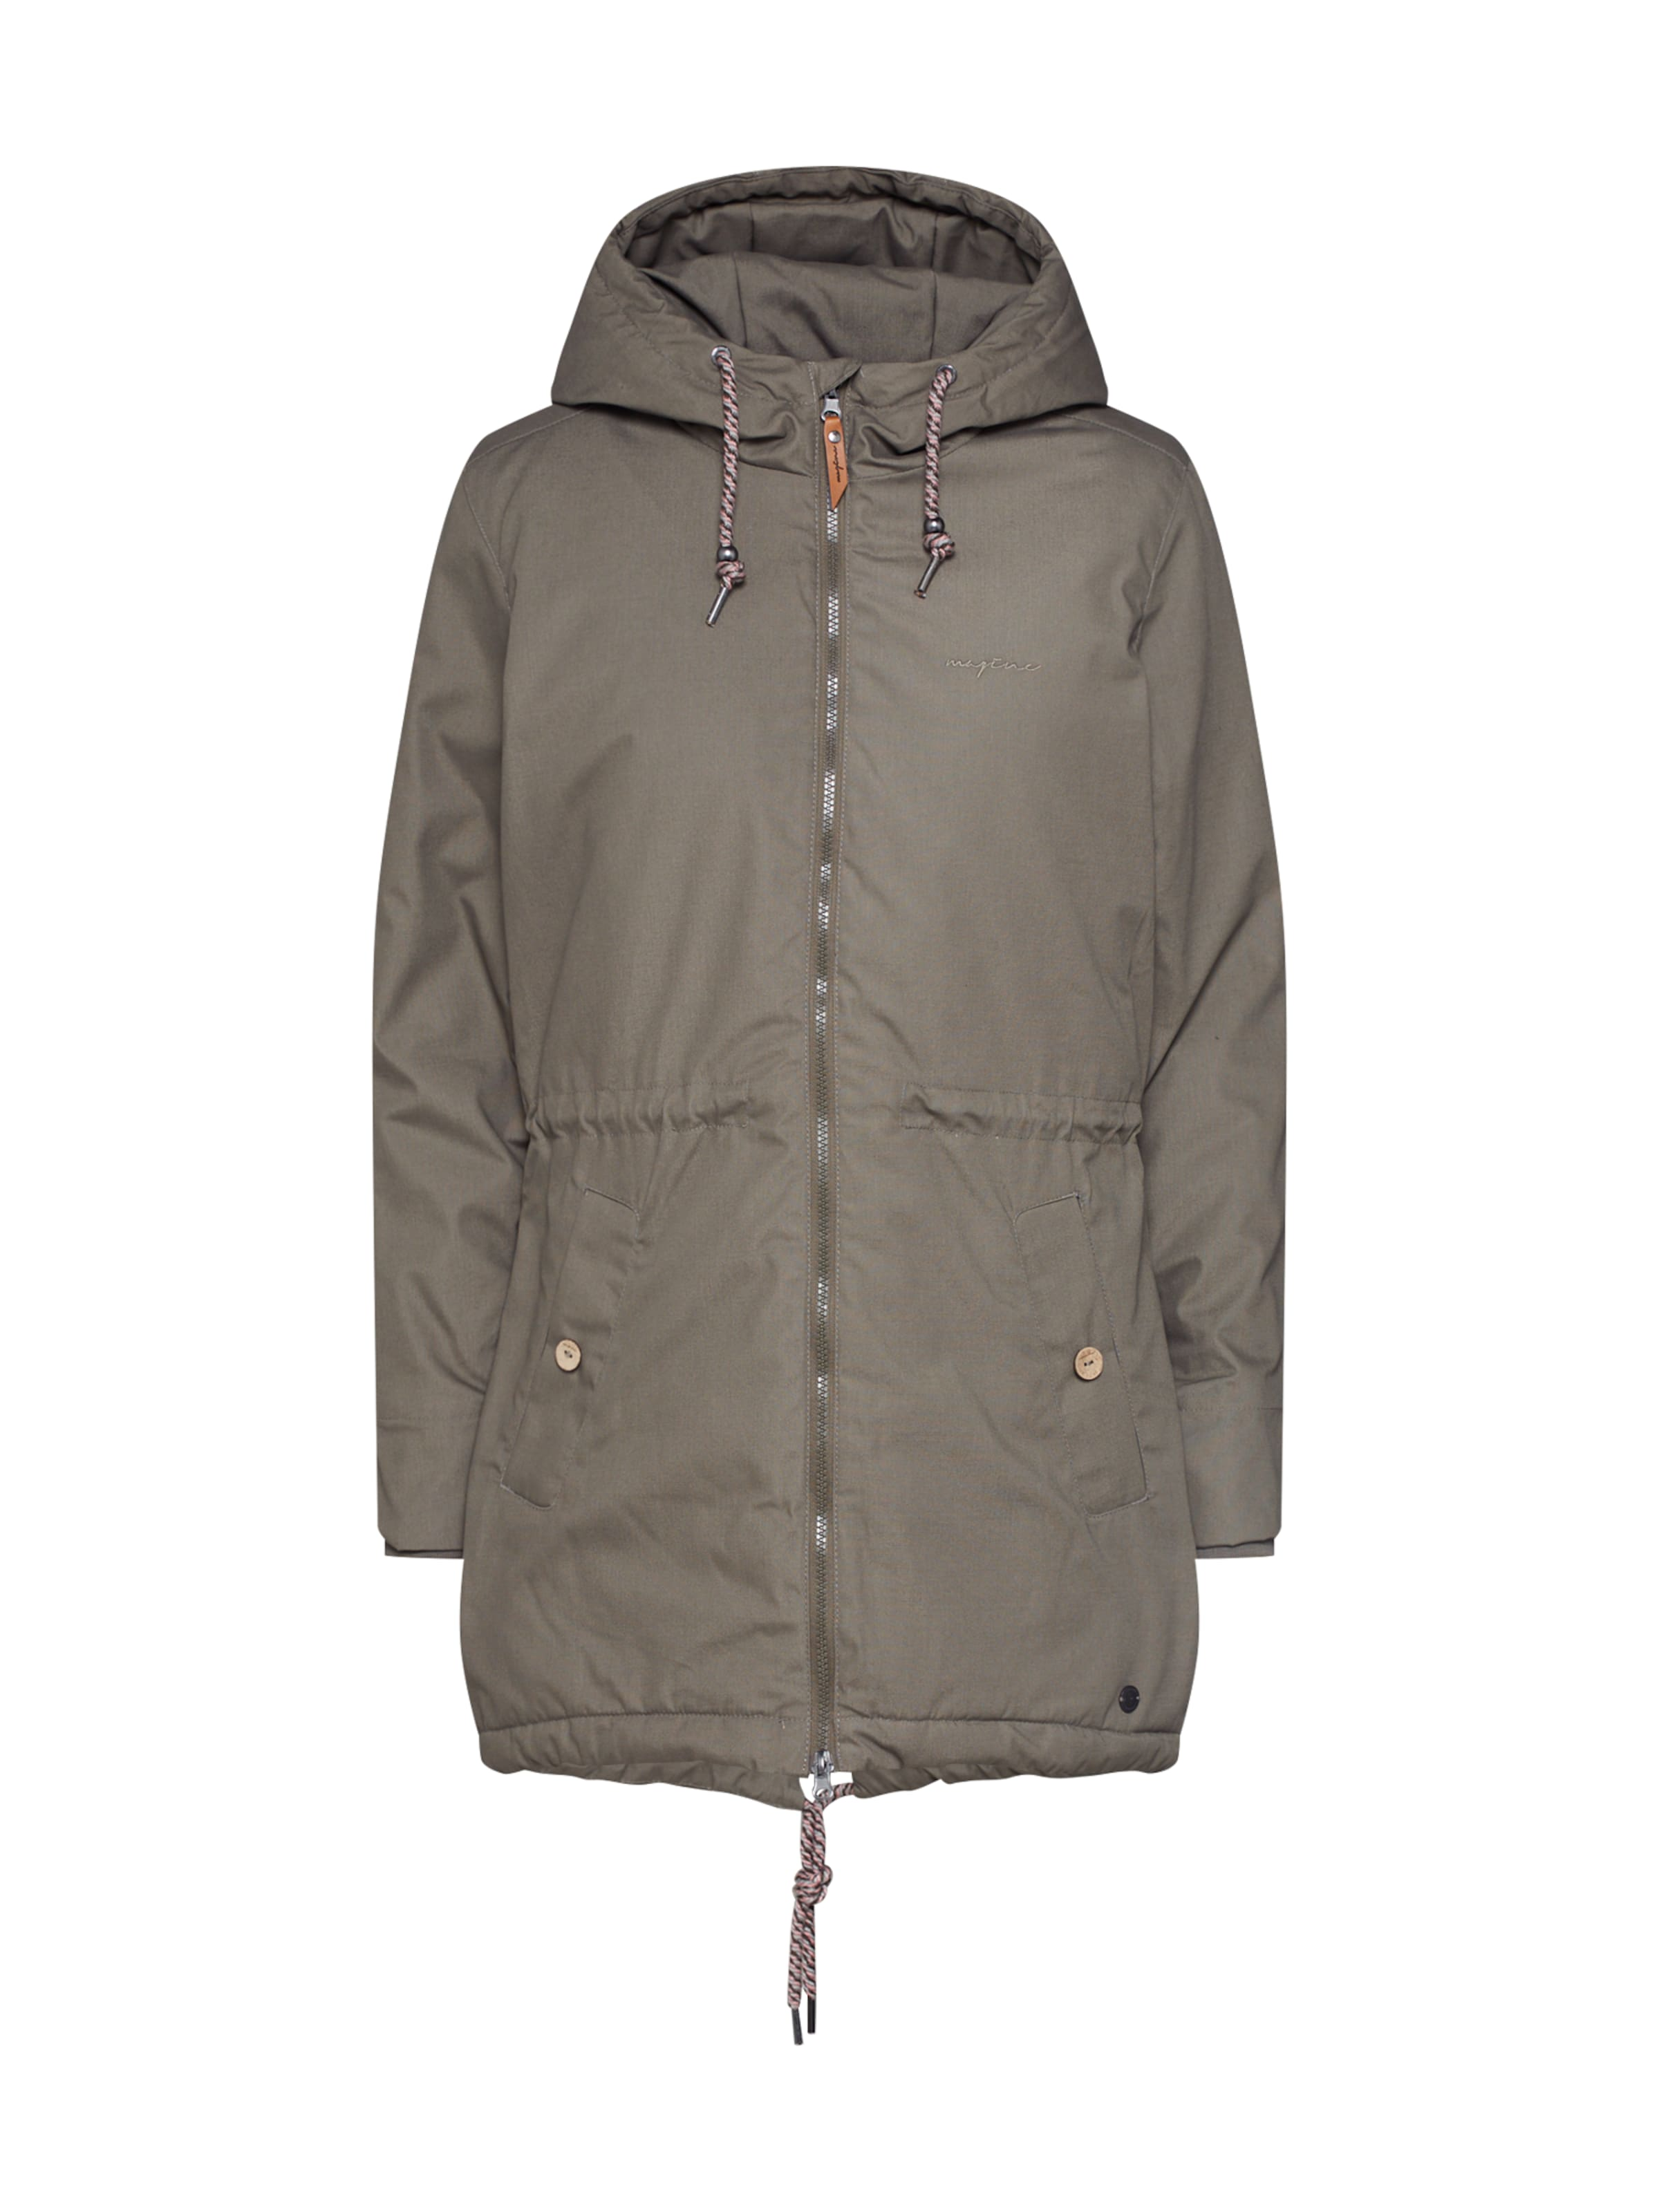 In Mazine Jacke 'library' Jacke Taupe Taupe Mazine Mazine In 'library' Jacke JuFcTlK135